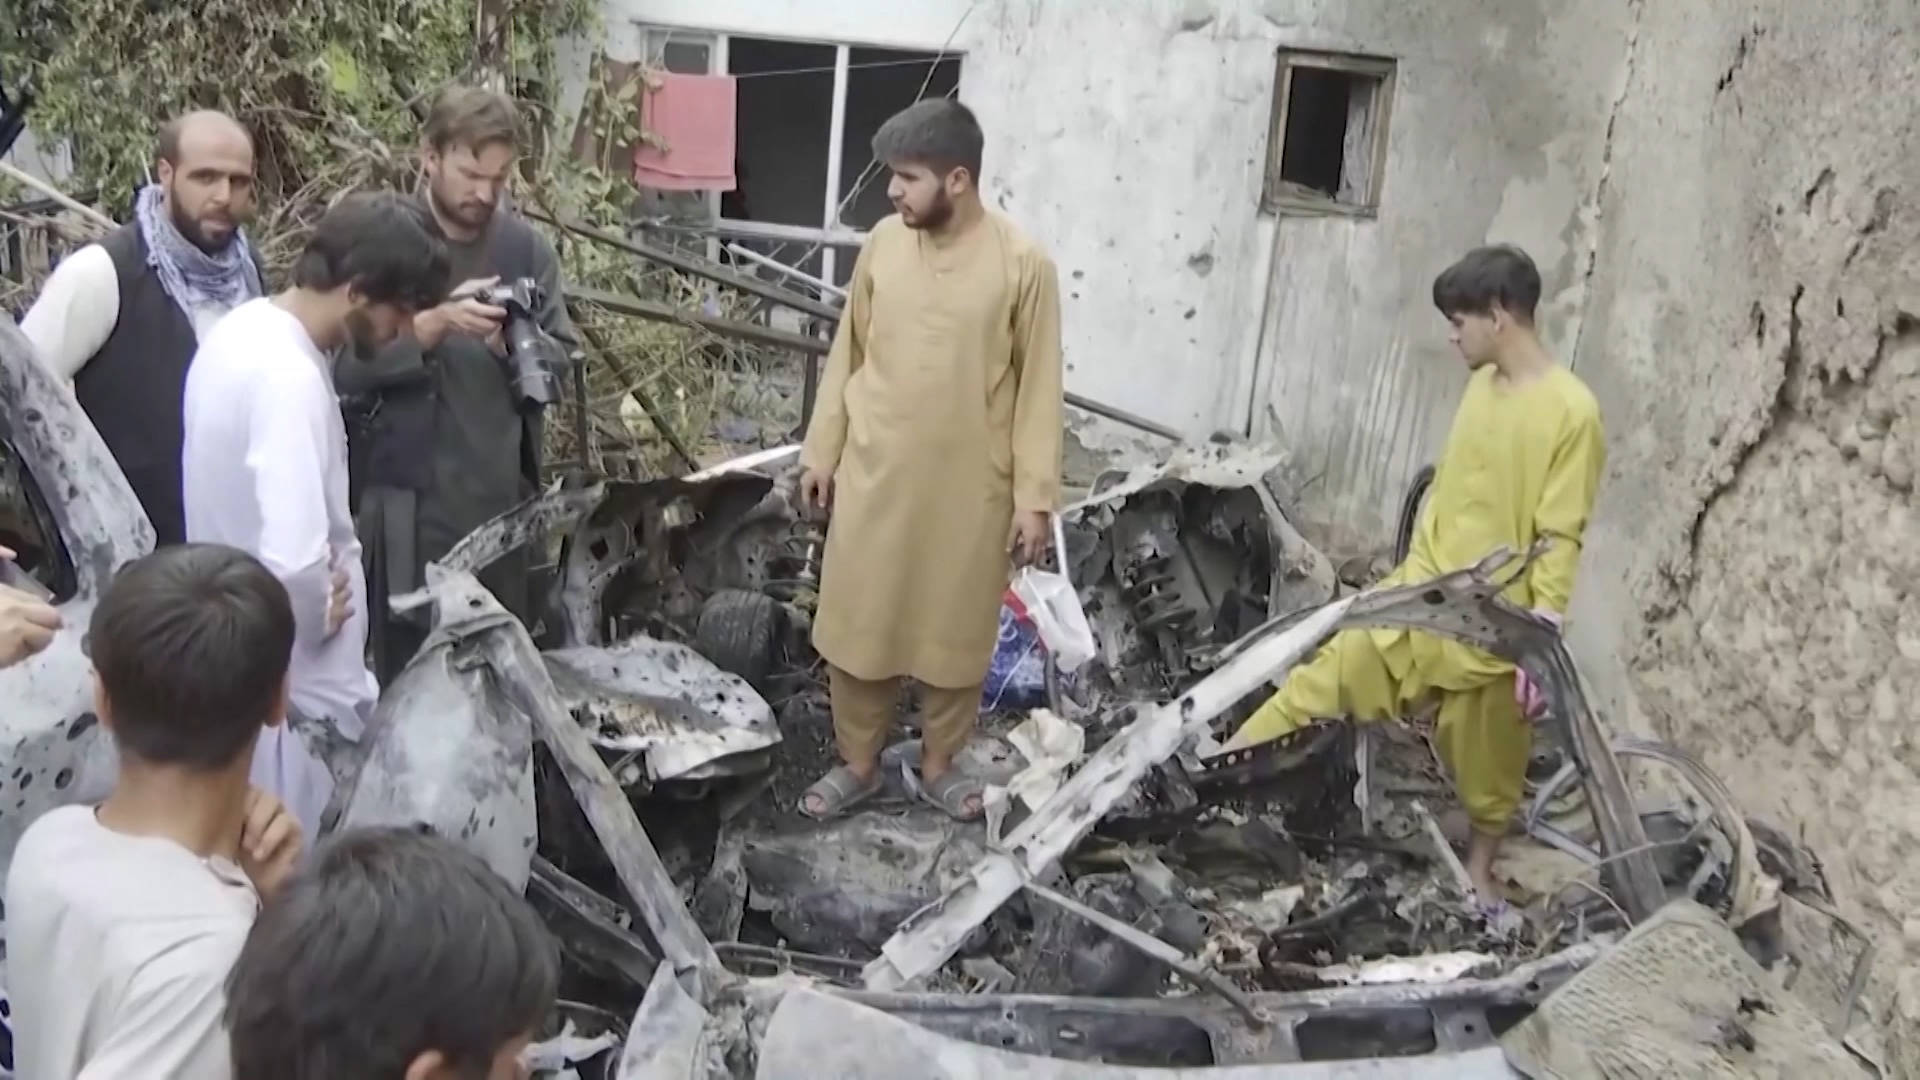 Read more about the article Afghanistan Faces Future Under Taliban as U.S. Withdraws & Drone Strikes Continue to Kill Civilians